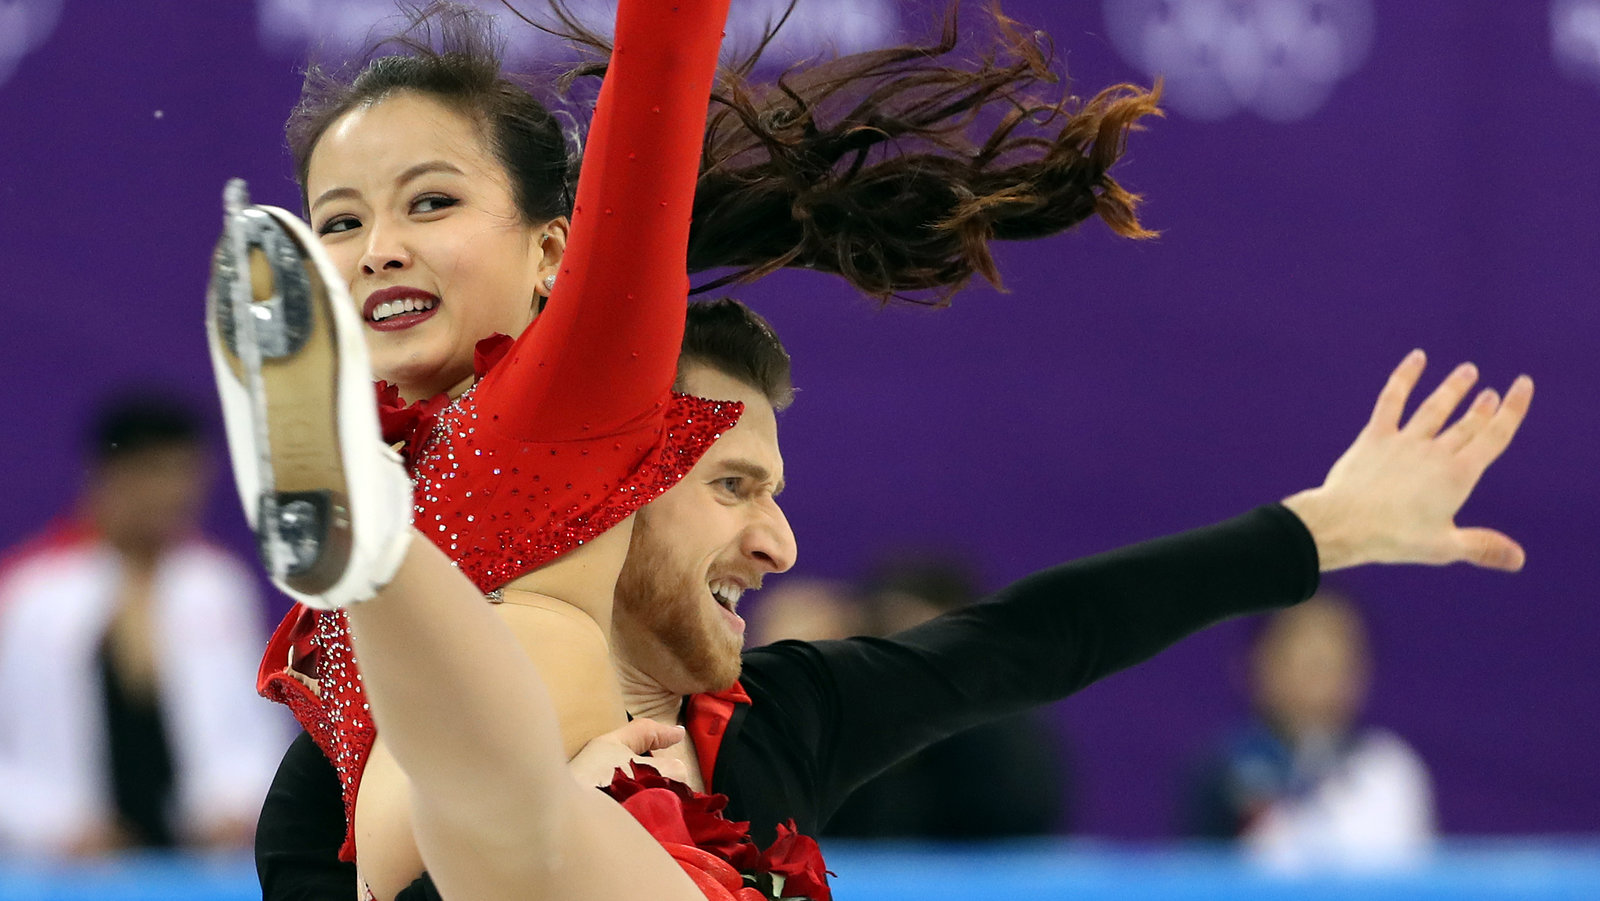 Ice Skater Wardrobe Malfunction Pictures photo 4